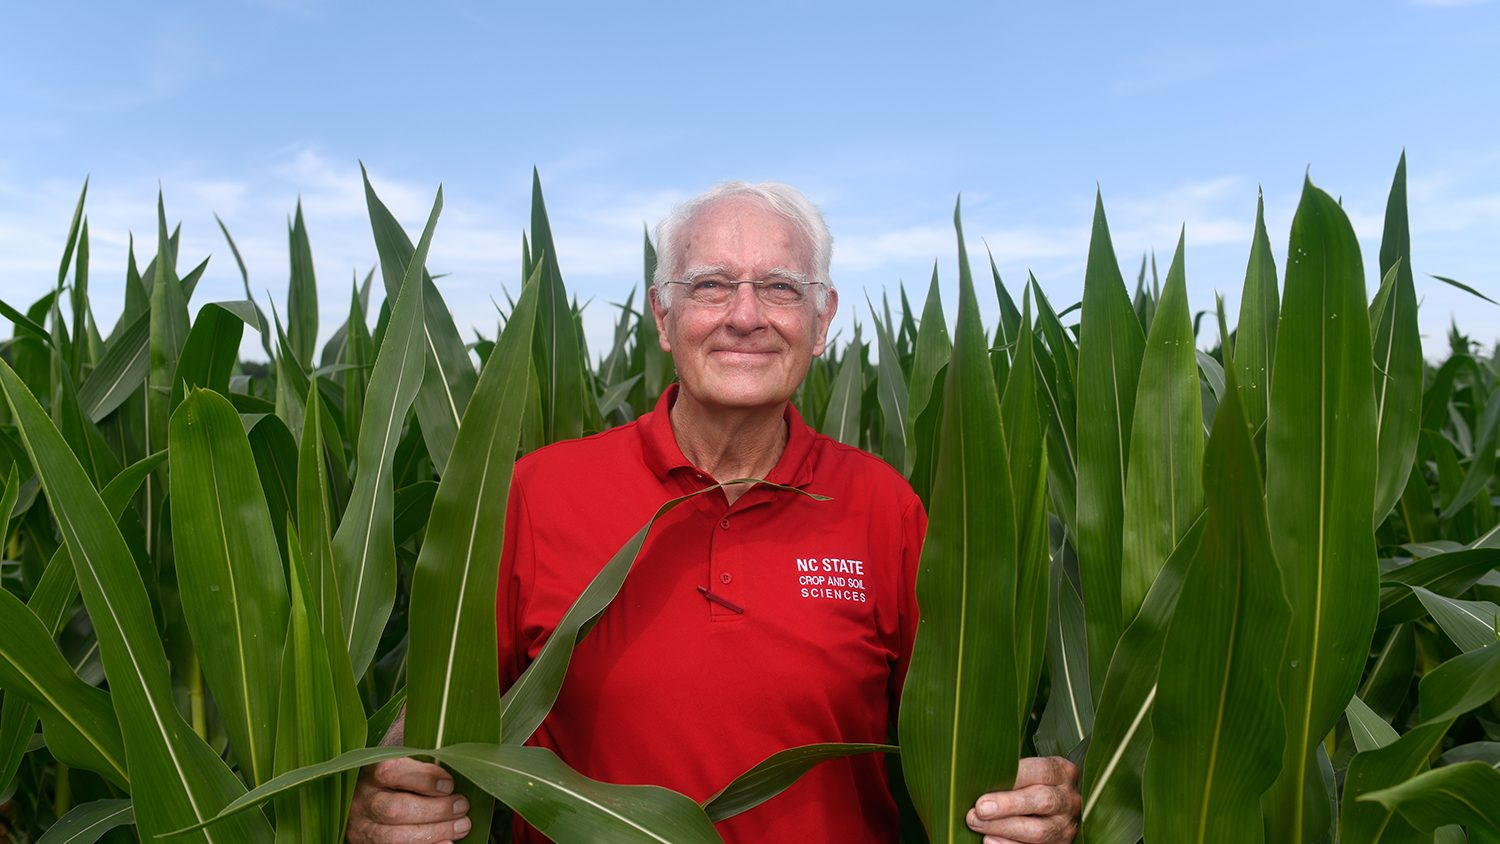 NC State CALS Professor Bob Patterson 50 years